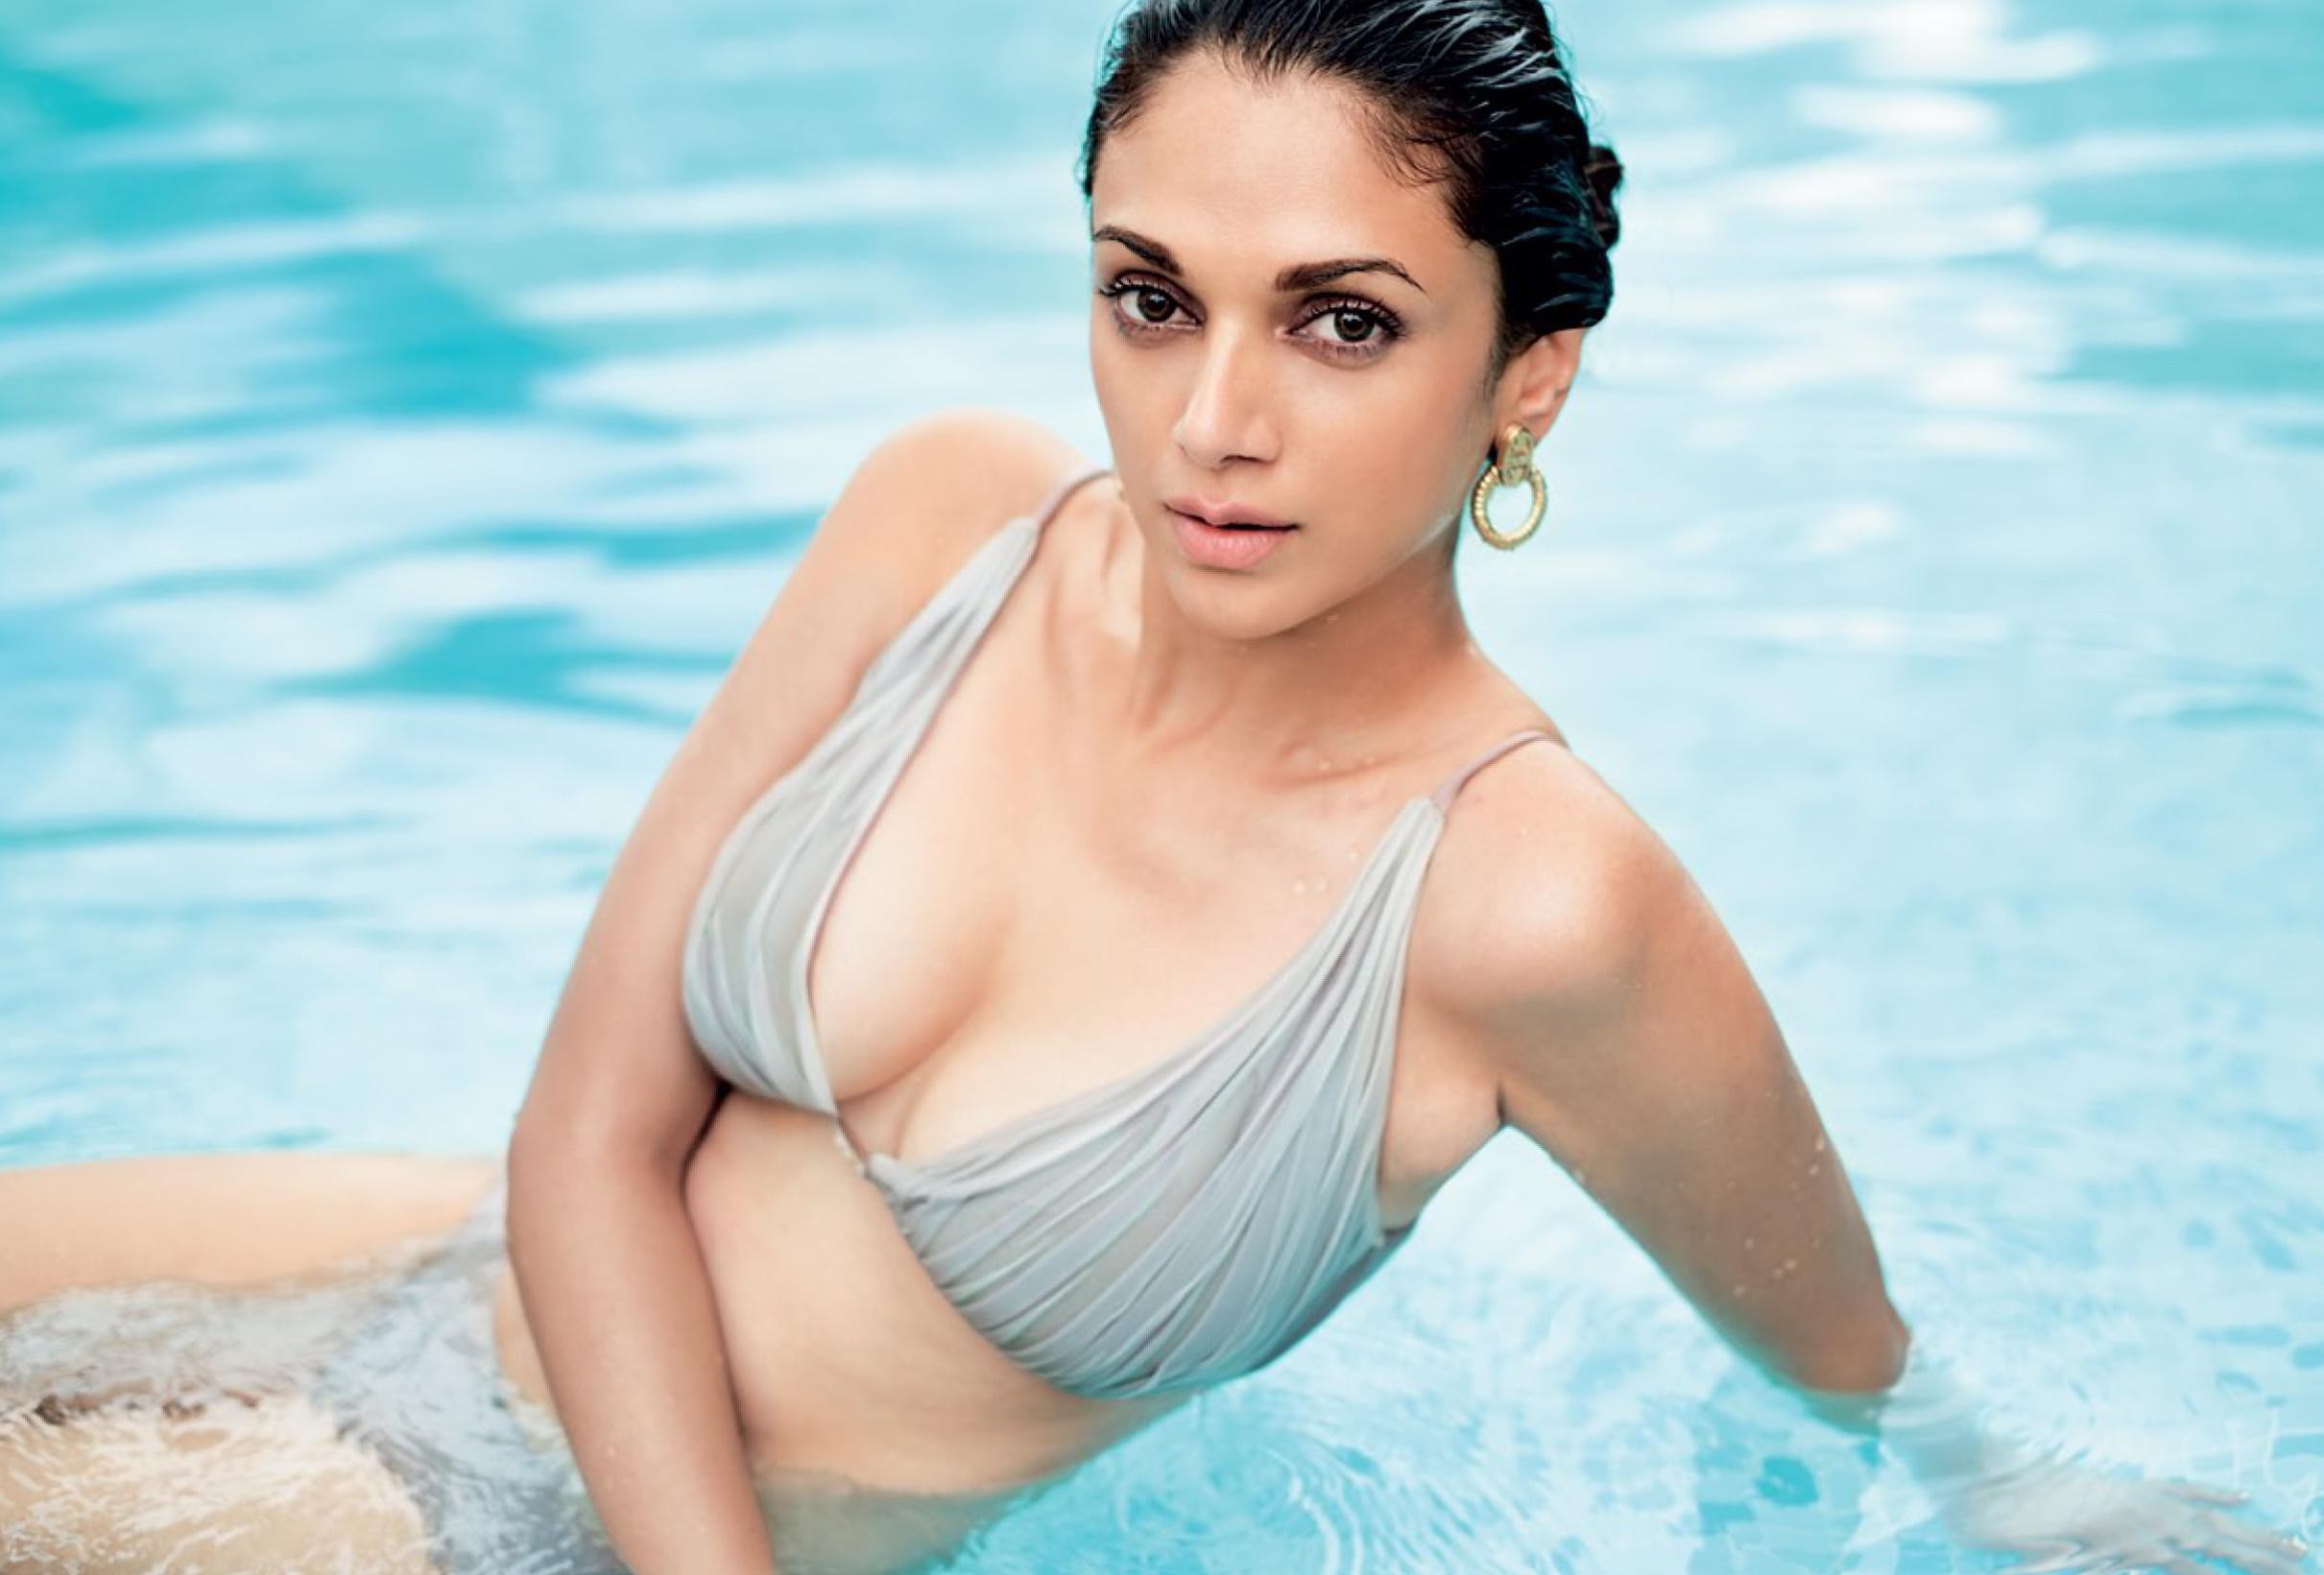 Hot pics of aditi rao hydari that are too hot to handle for Hot images blog